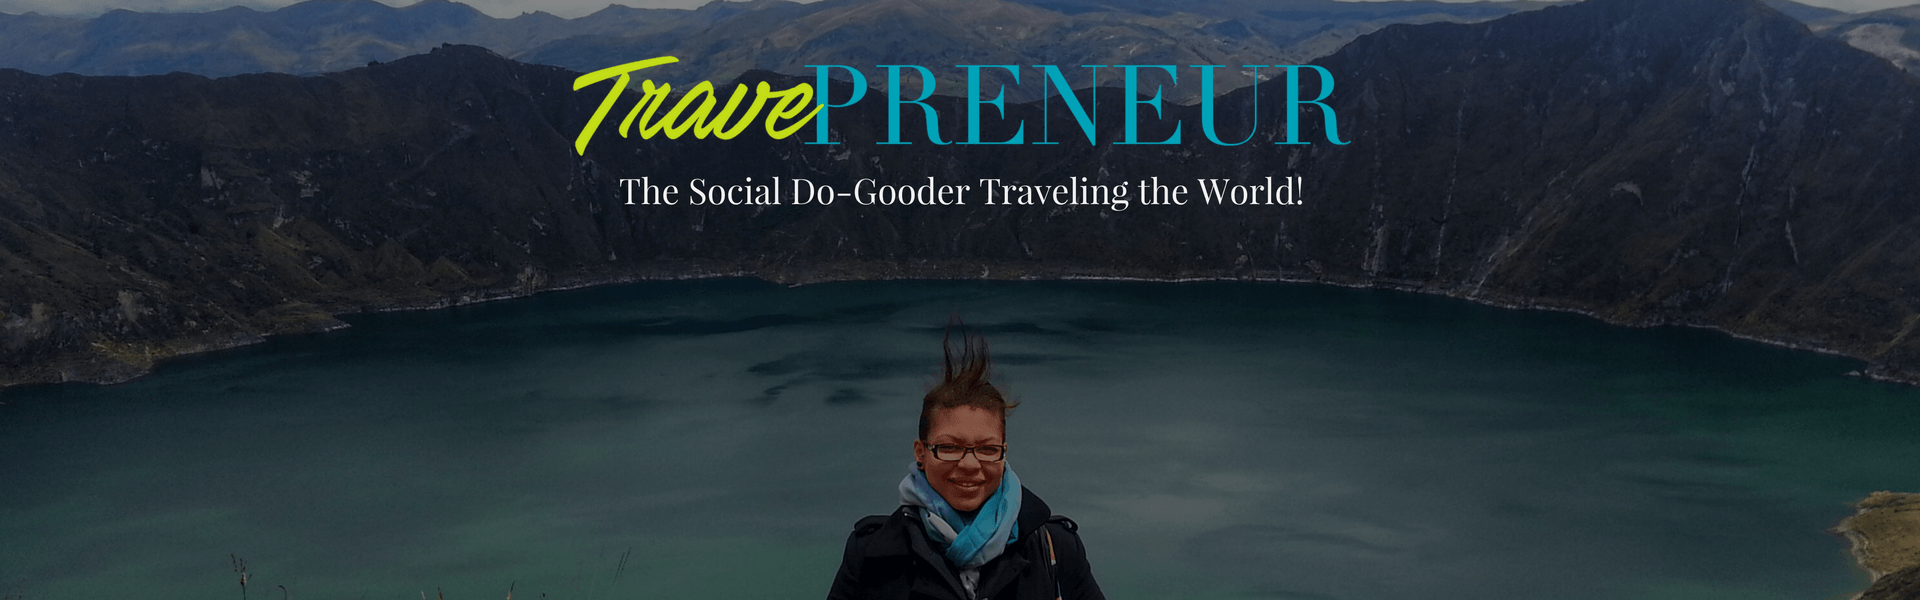 The Social Do-Gooder Traveling the World!